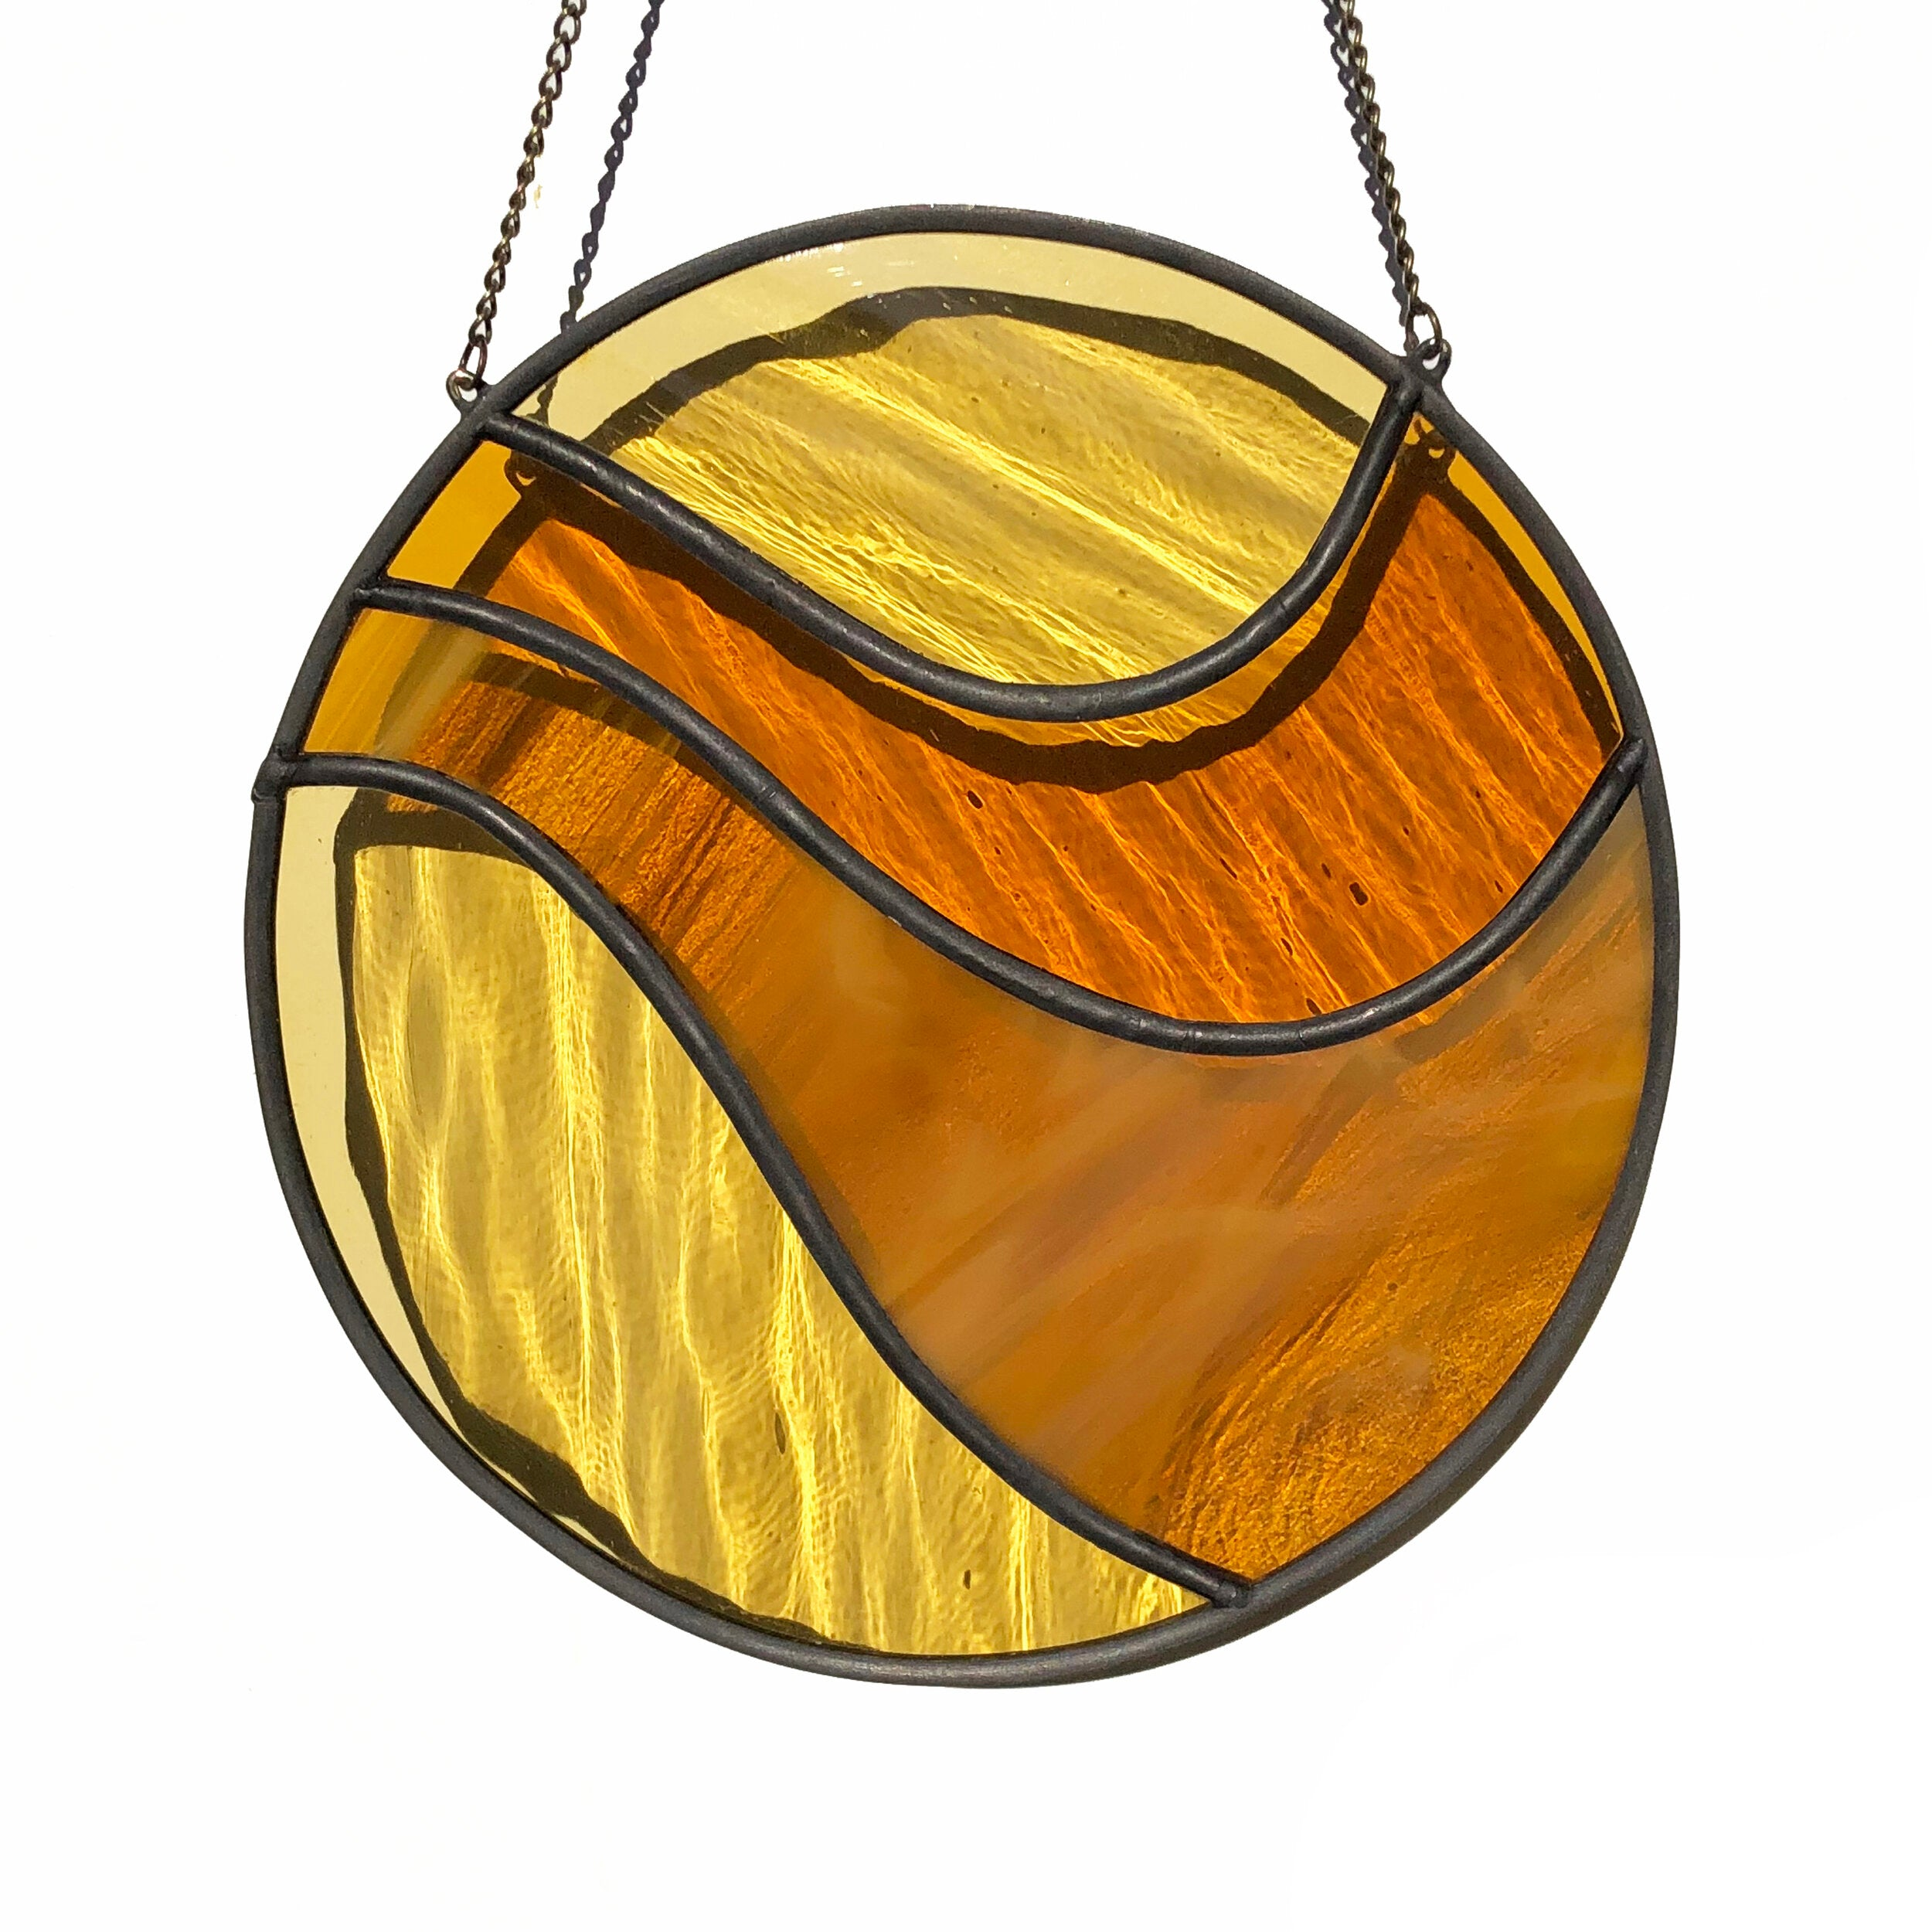 "Handmade stained glass wall or window hanging. Groovy. Measures 3.5"" x 3.5"" not including chain. Arrives ready to hang. Chain measures 8"". Available in shades of ochre and rust or blues."